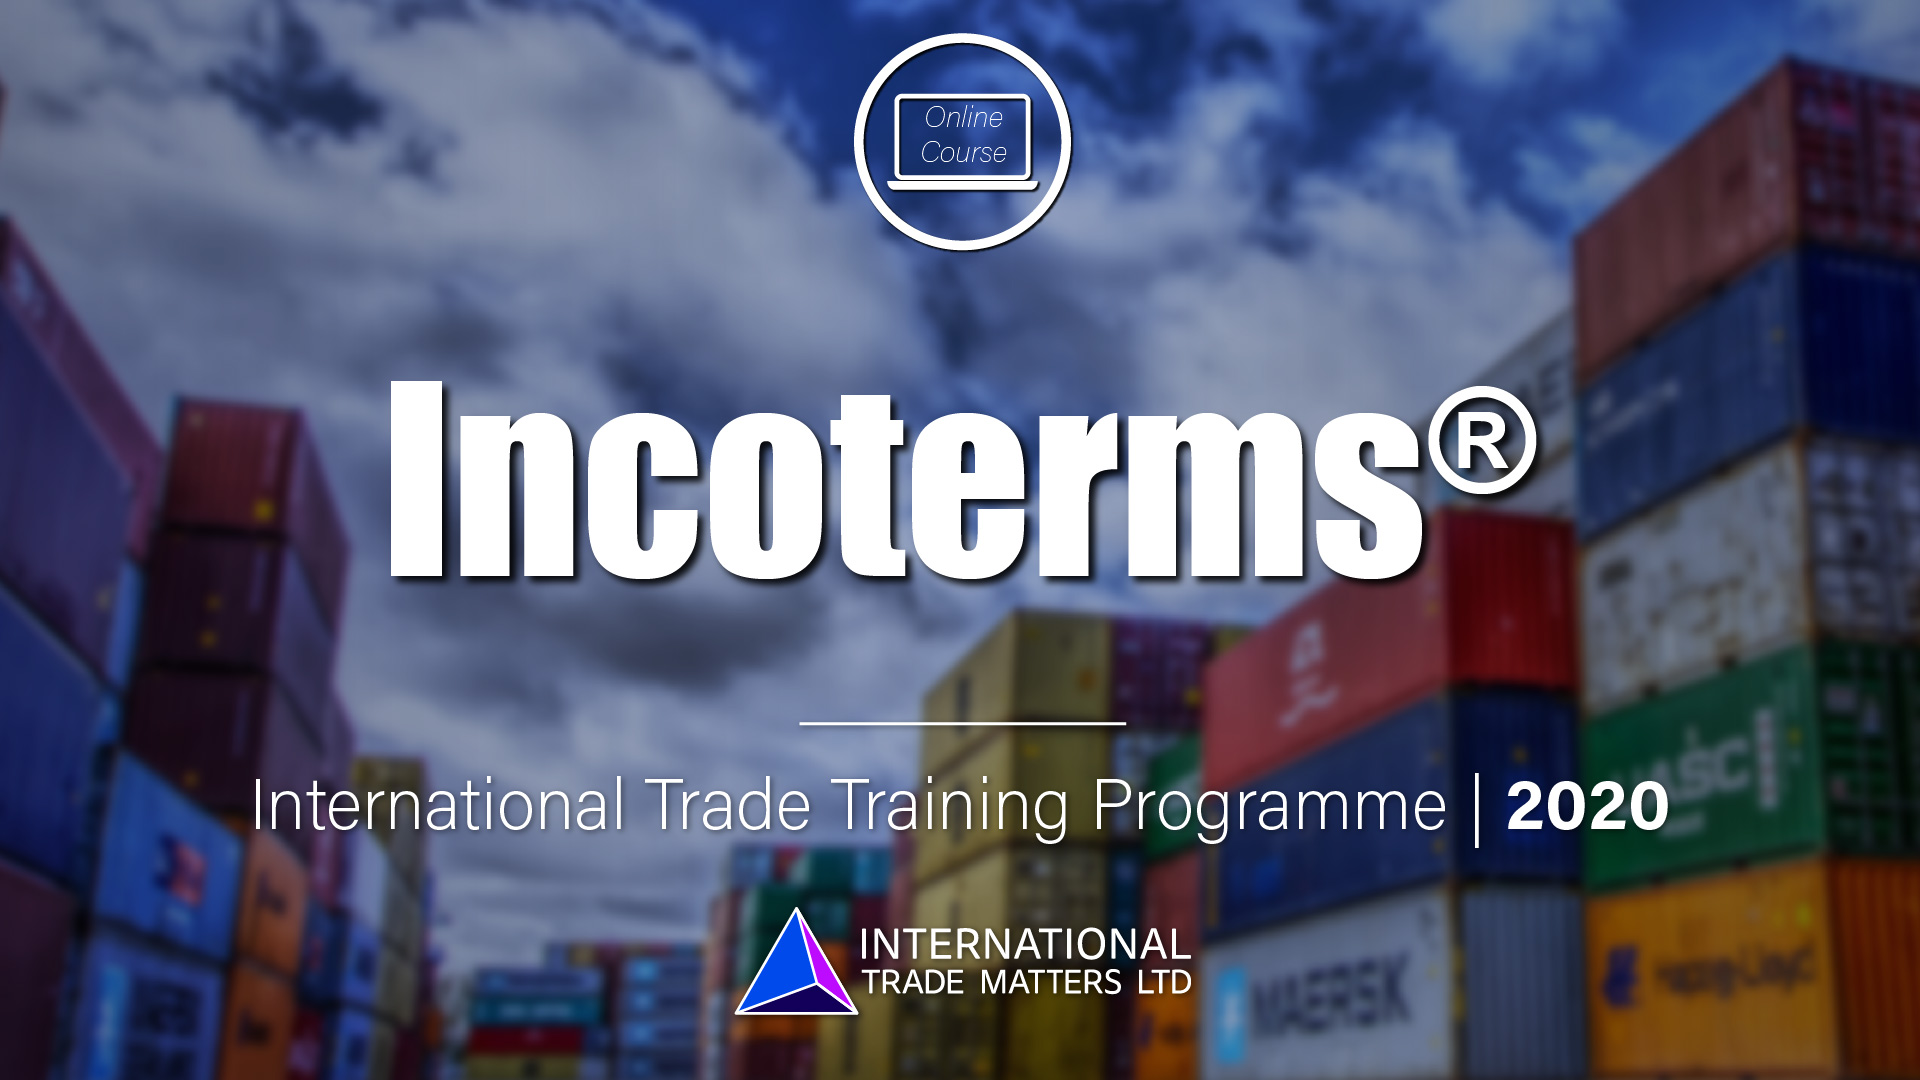 Incoterms® – An Online Course